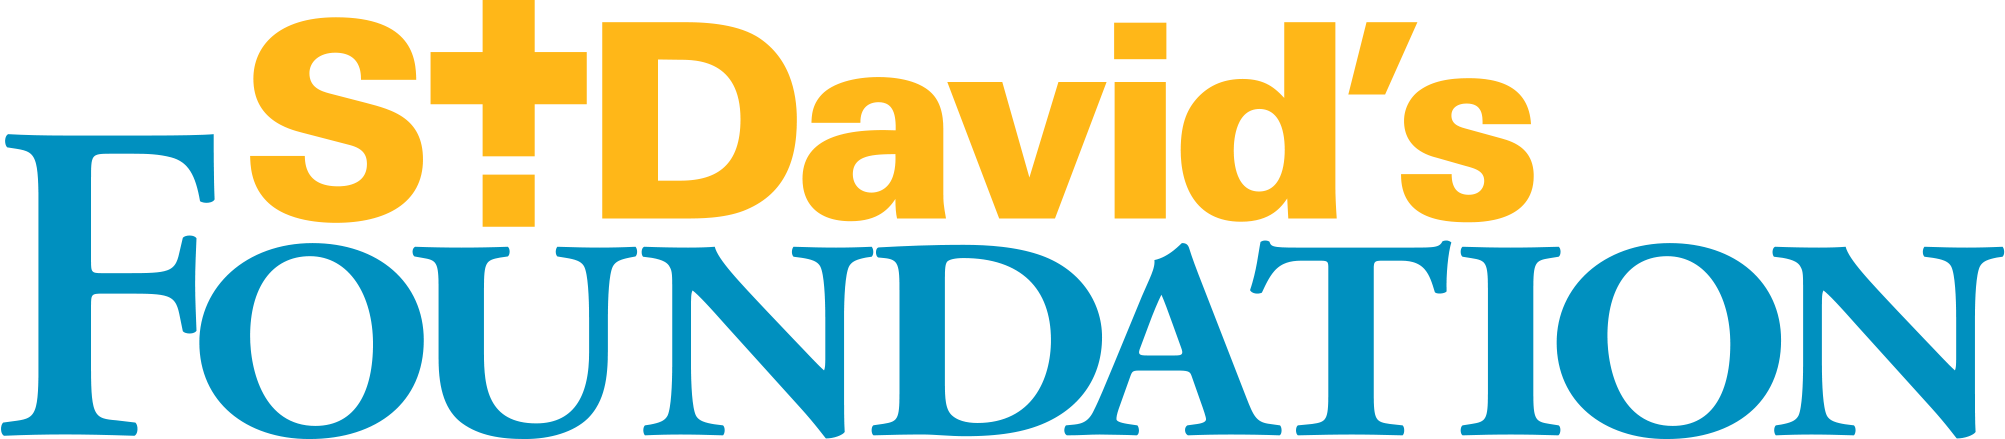 St. Davids Foundation